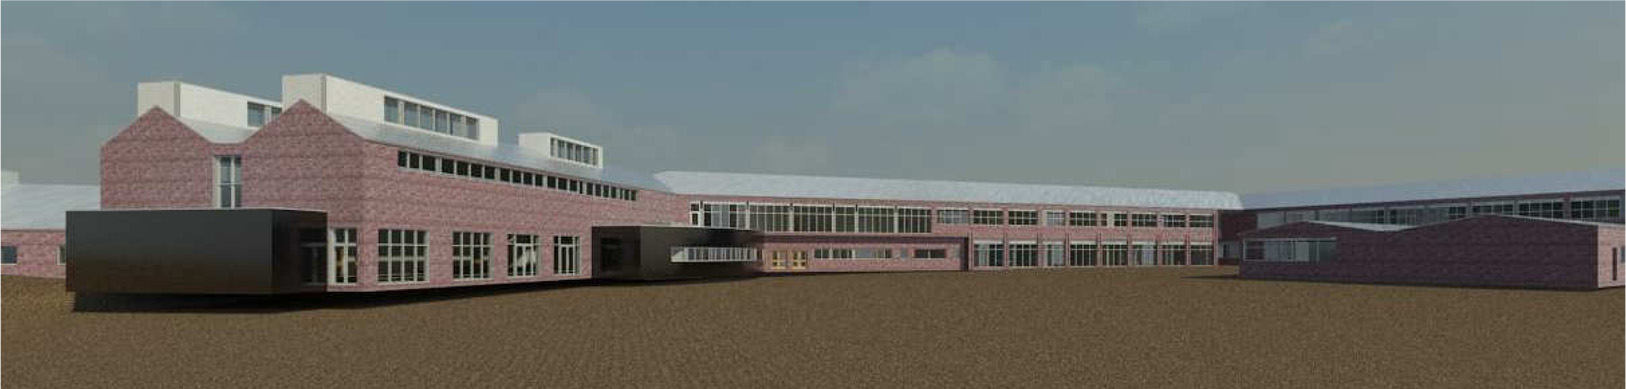 Strabane Academy New Build